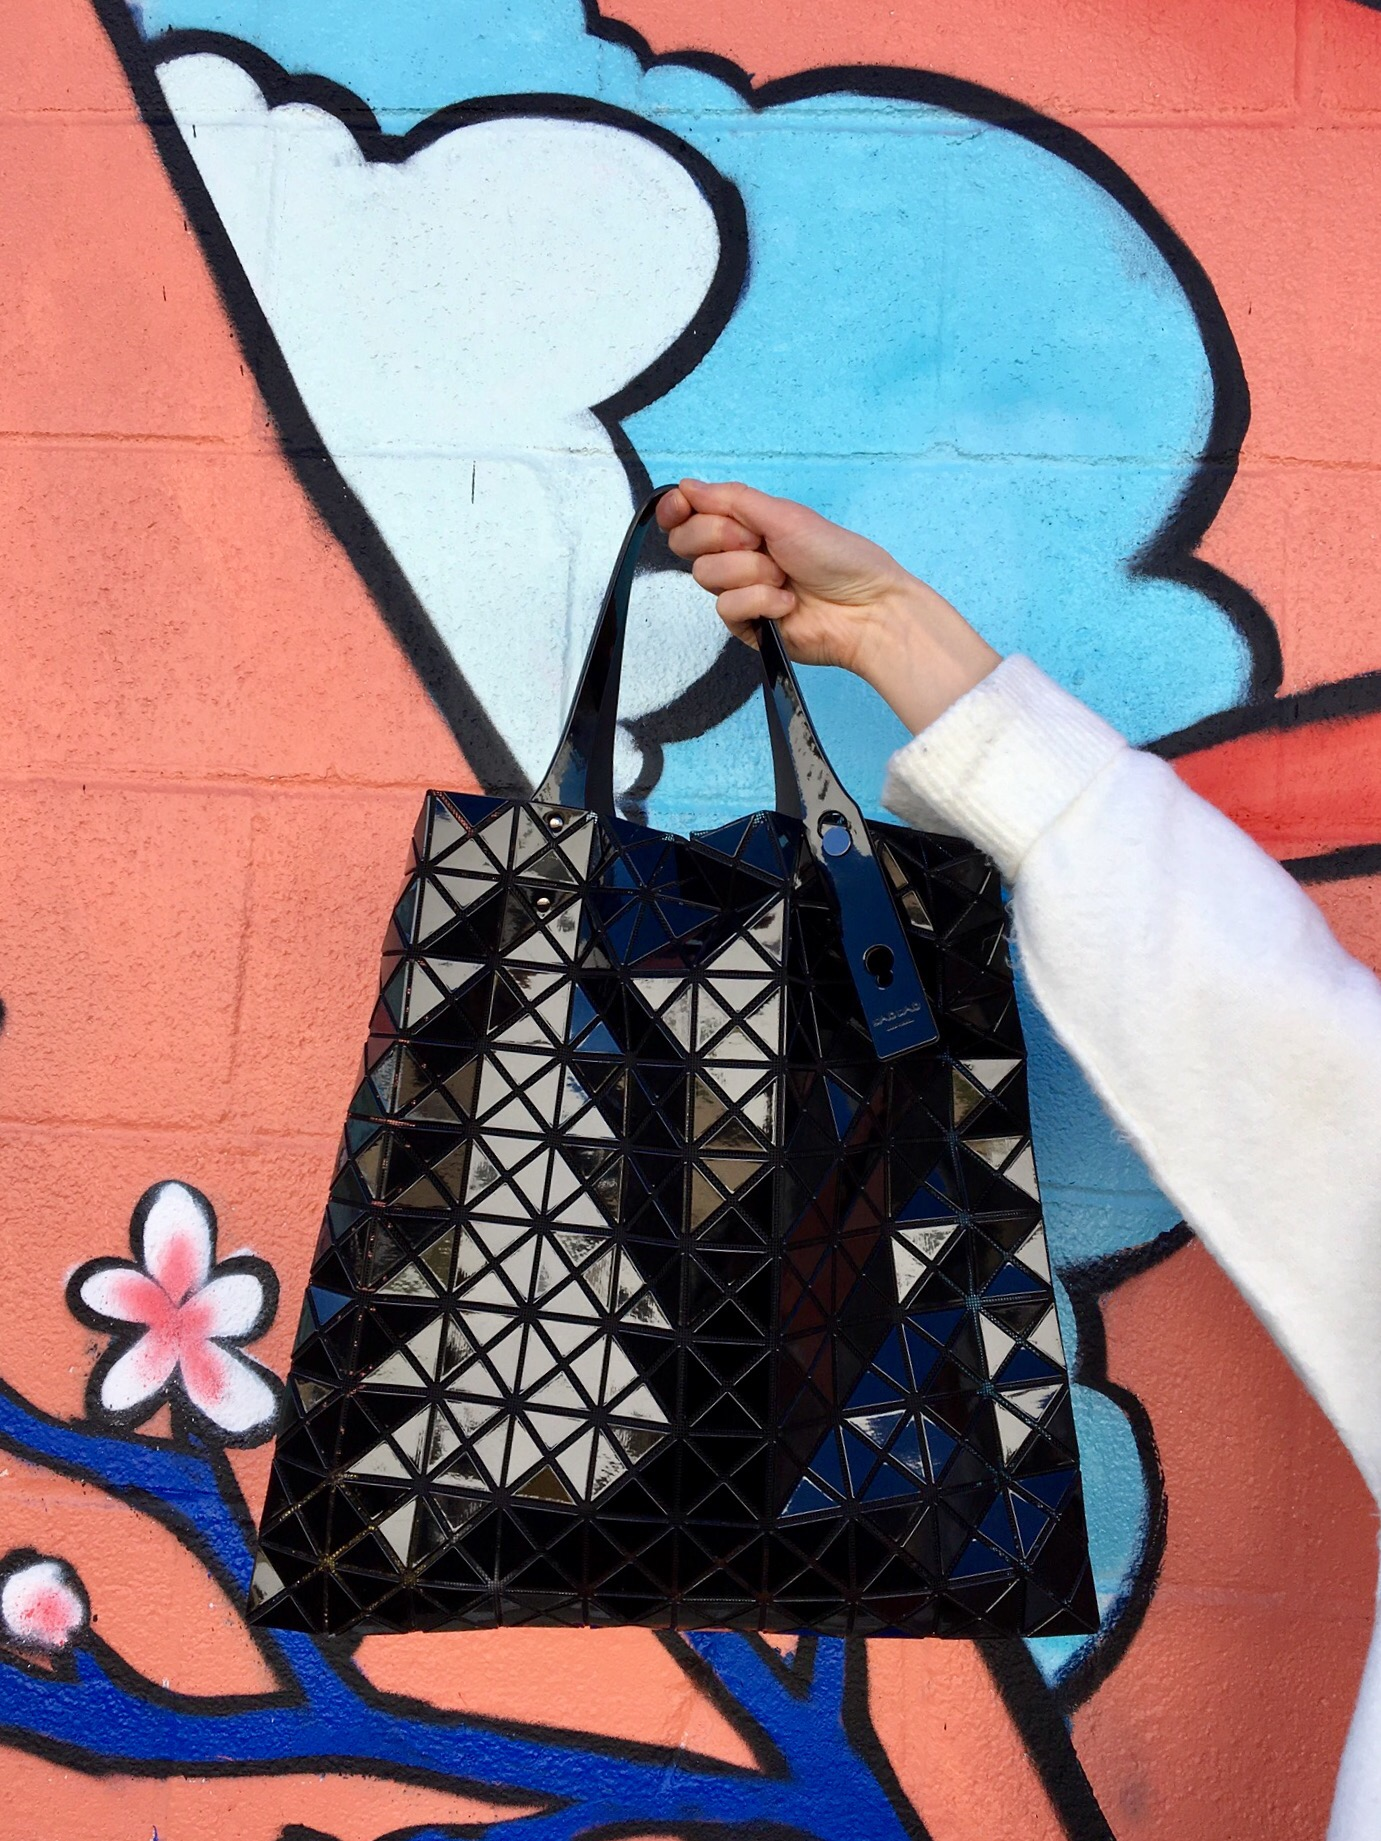 Jual Murah Tokyo Asakusa Tote Update 2018 Les Catino Black A Houstonians Guide In 24 Hours Its Not Hou Me Nearly Half Japanese